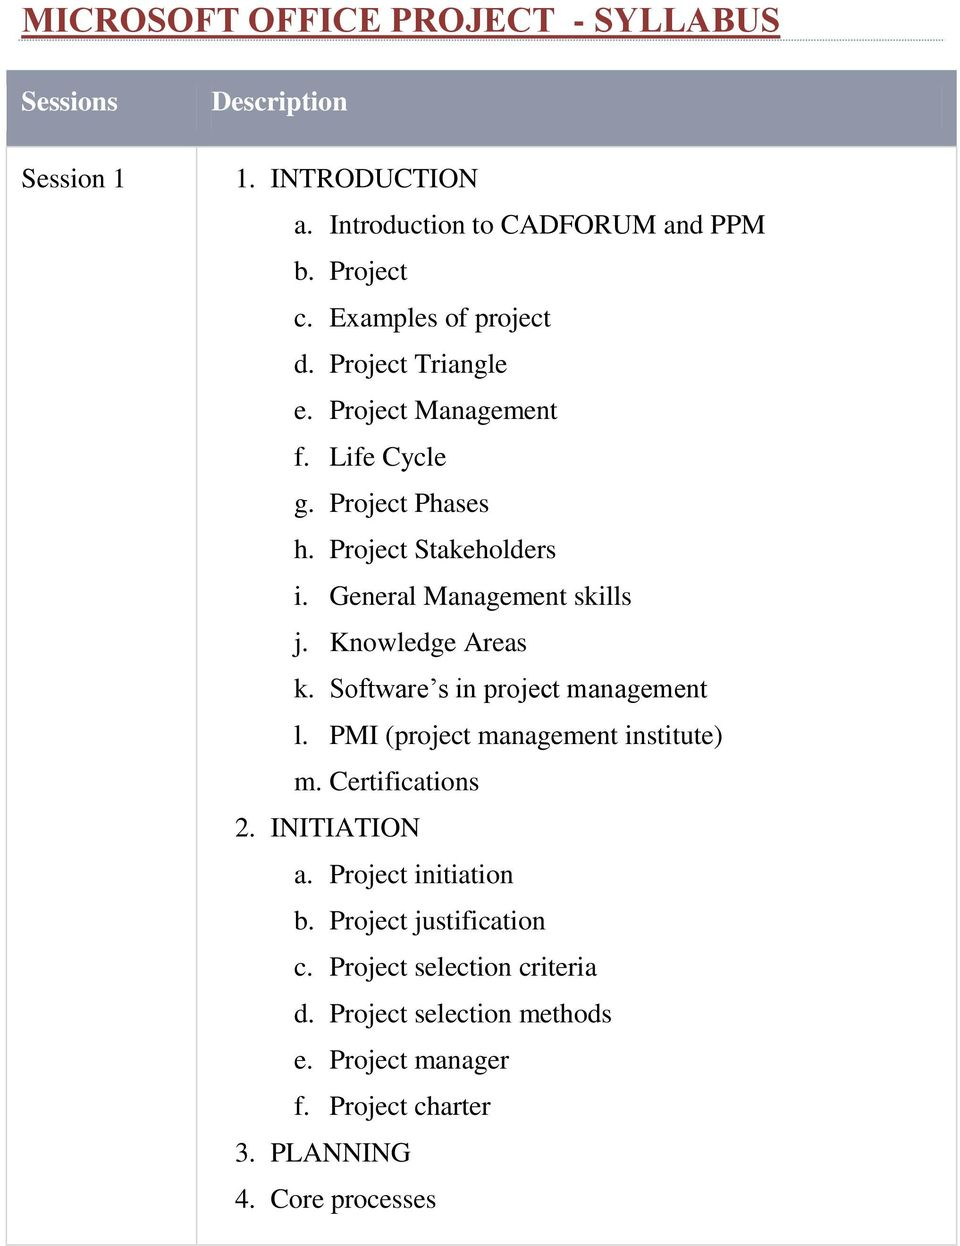 General Management skills j. Knowledge Areas k. Software s in project management l. PMI (project management institute) m. Certifications 2.